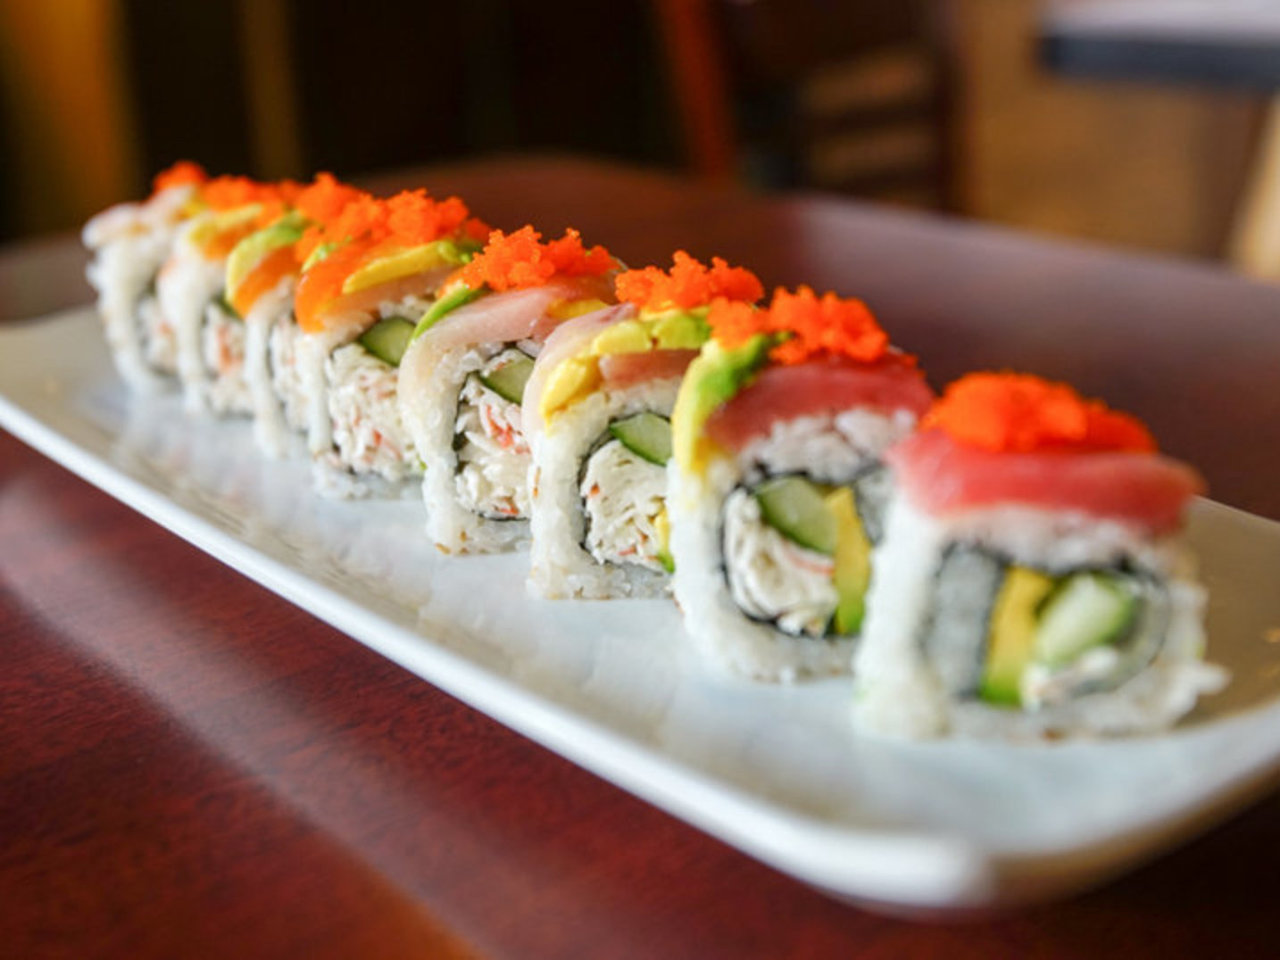 We prepare a California roll and other varieties of delicious rolls